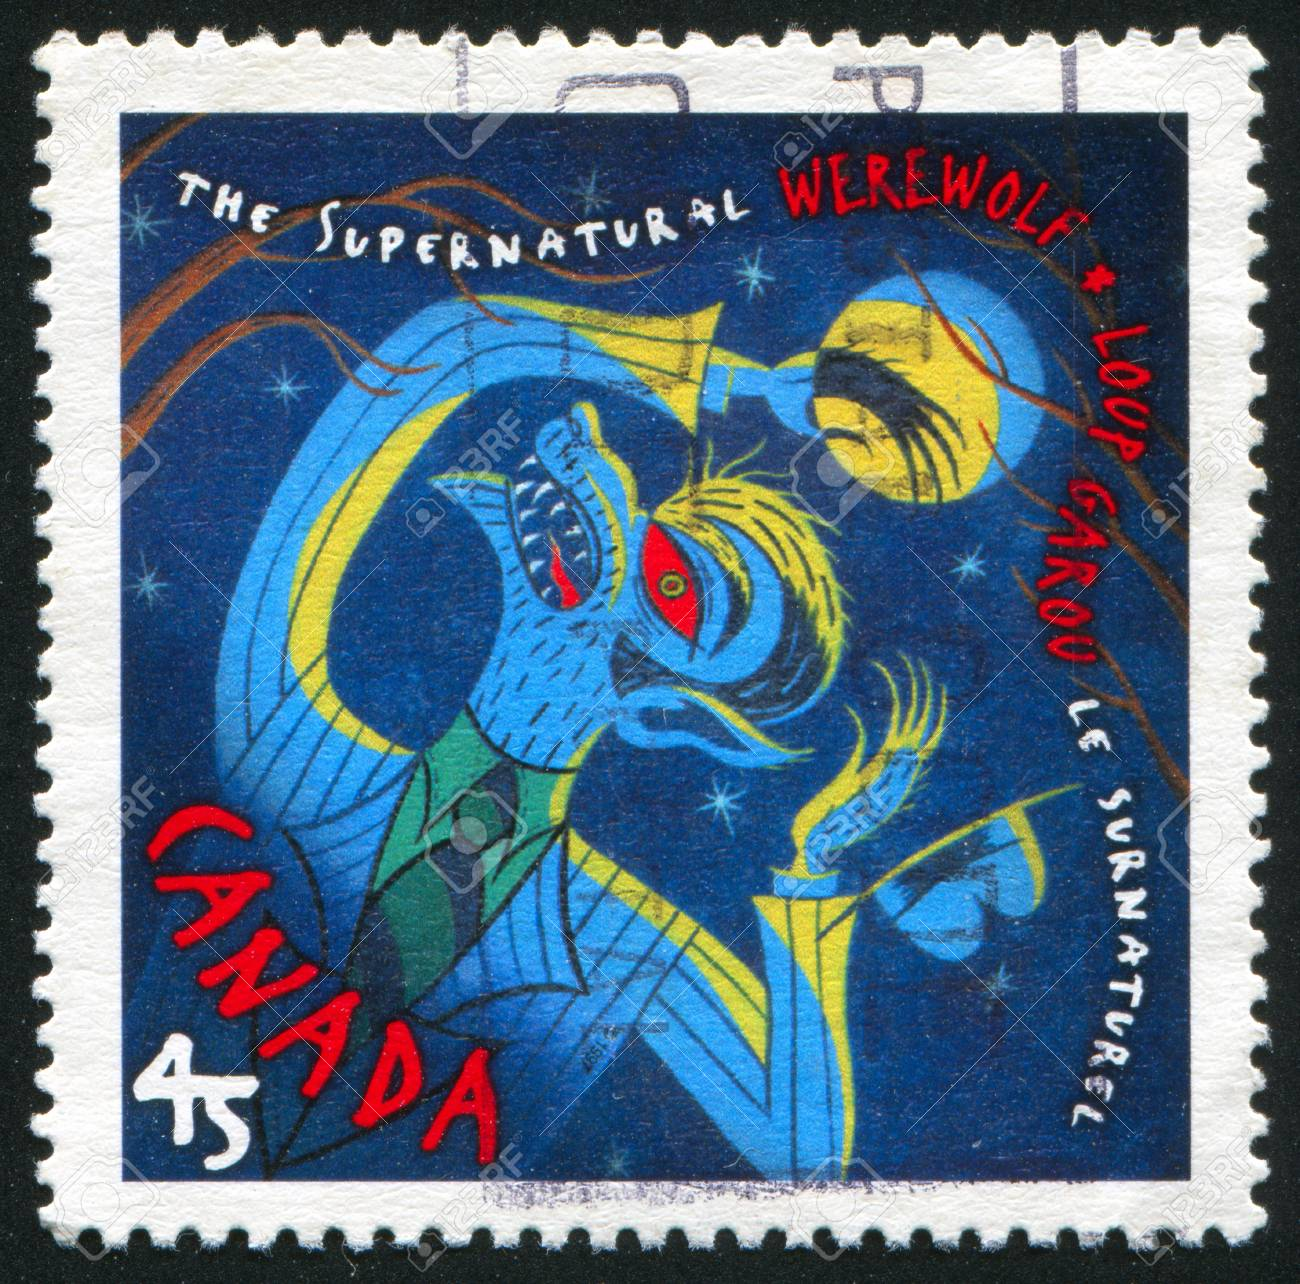 CANADA - CIRCA 1997: stamp printed by Canada, shows Werewolf, circa 1997 Stock Photo - 9834388